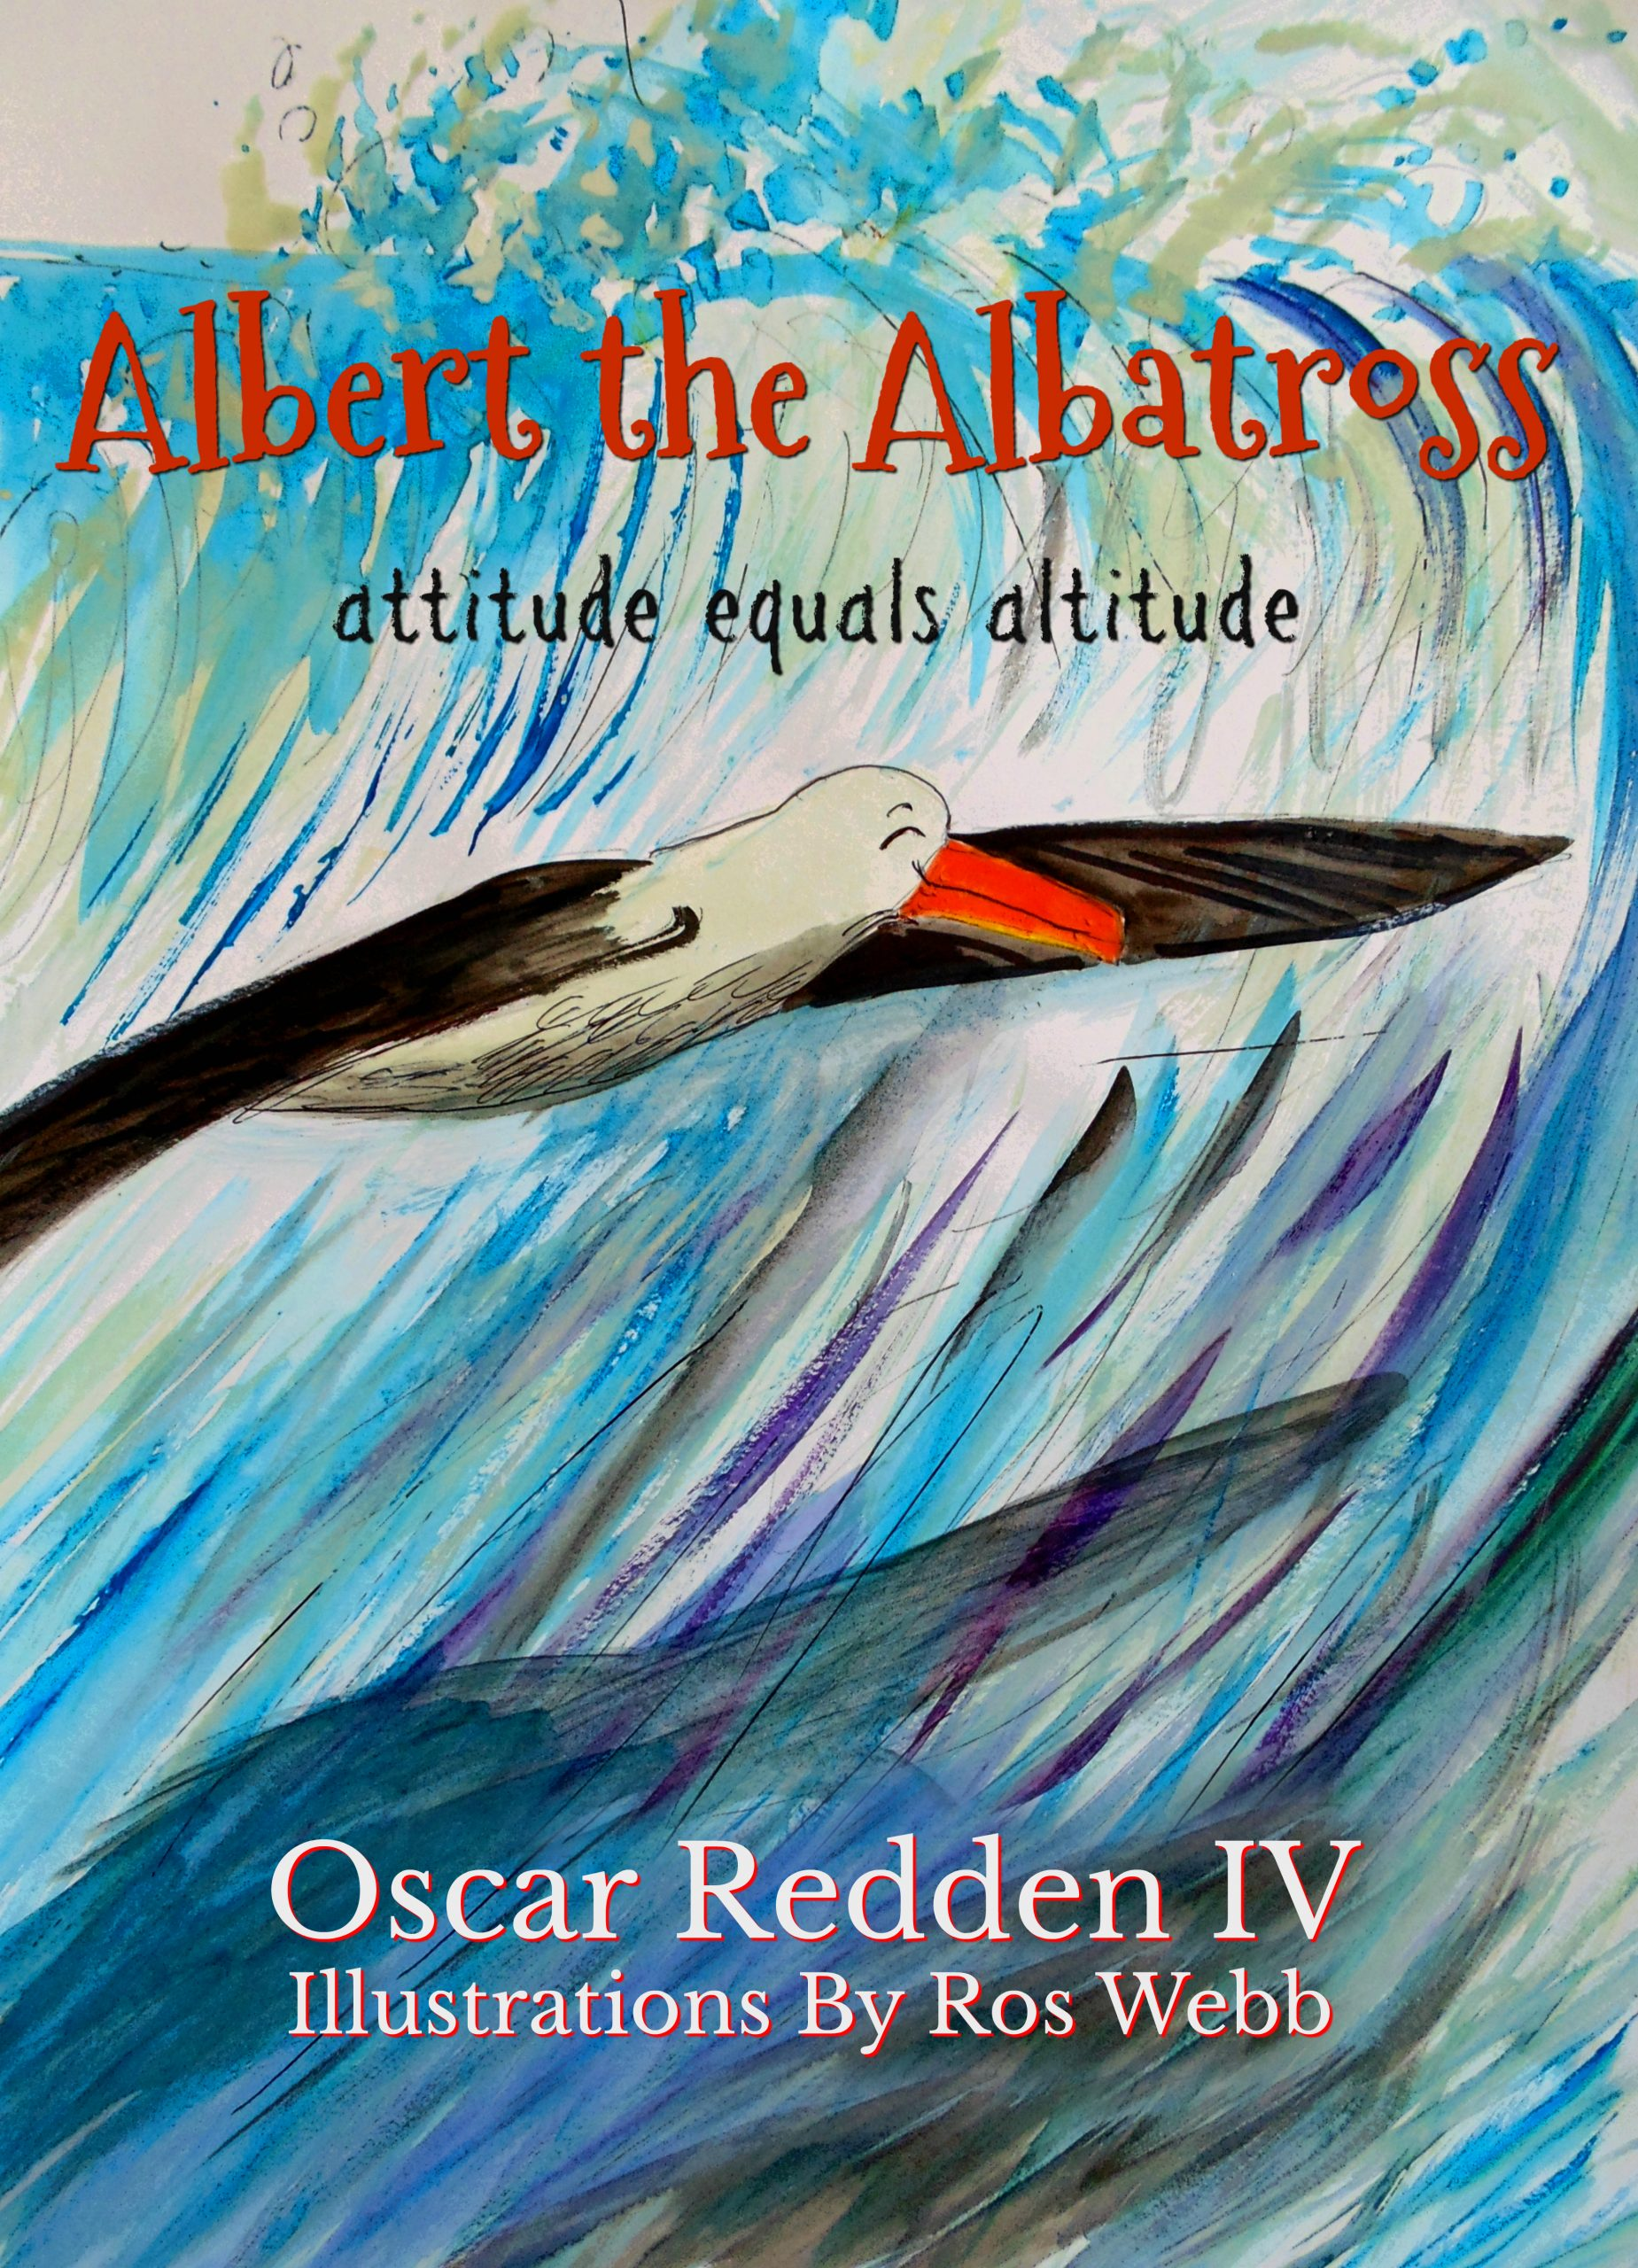 Children's Book Albert the Albatross Review